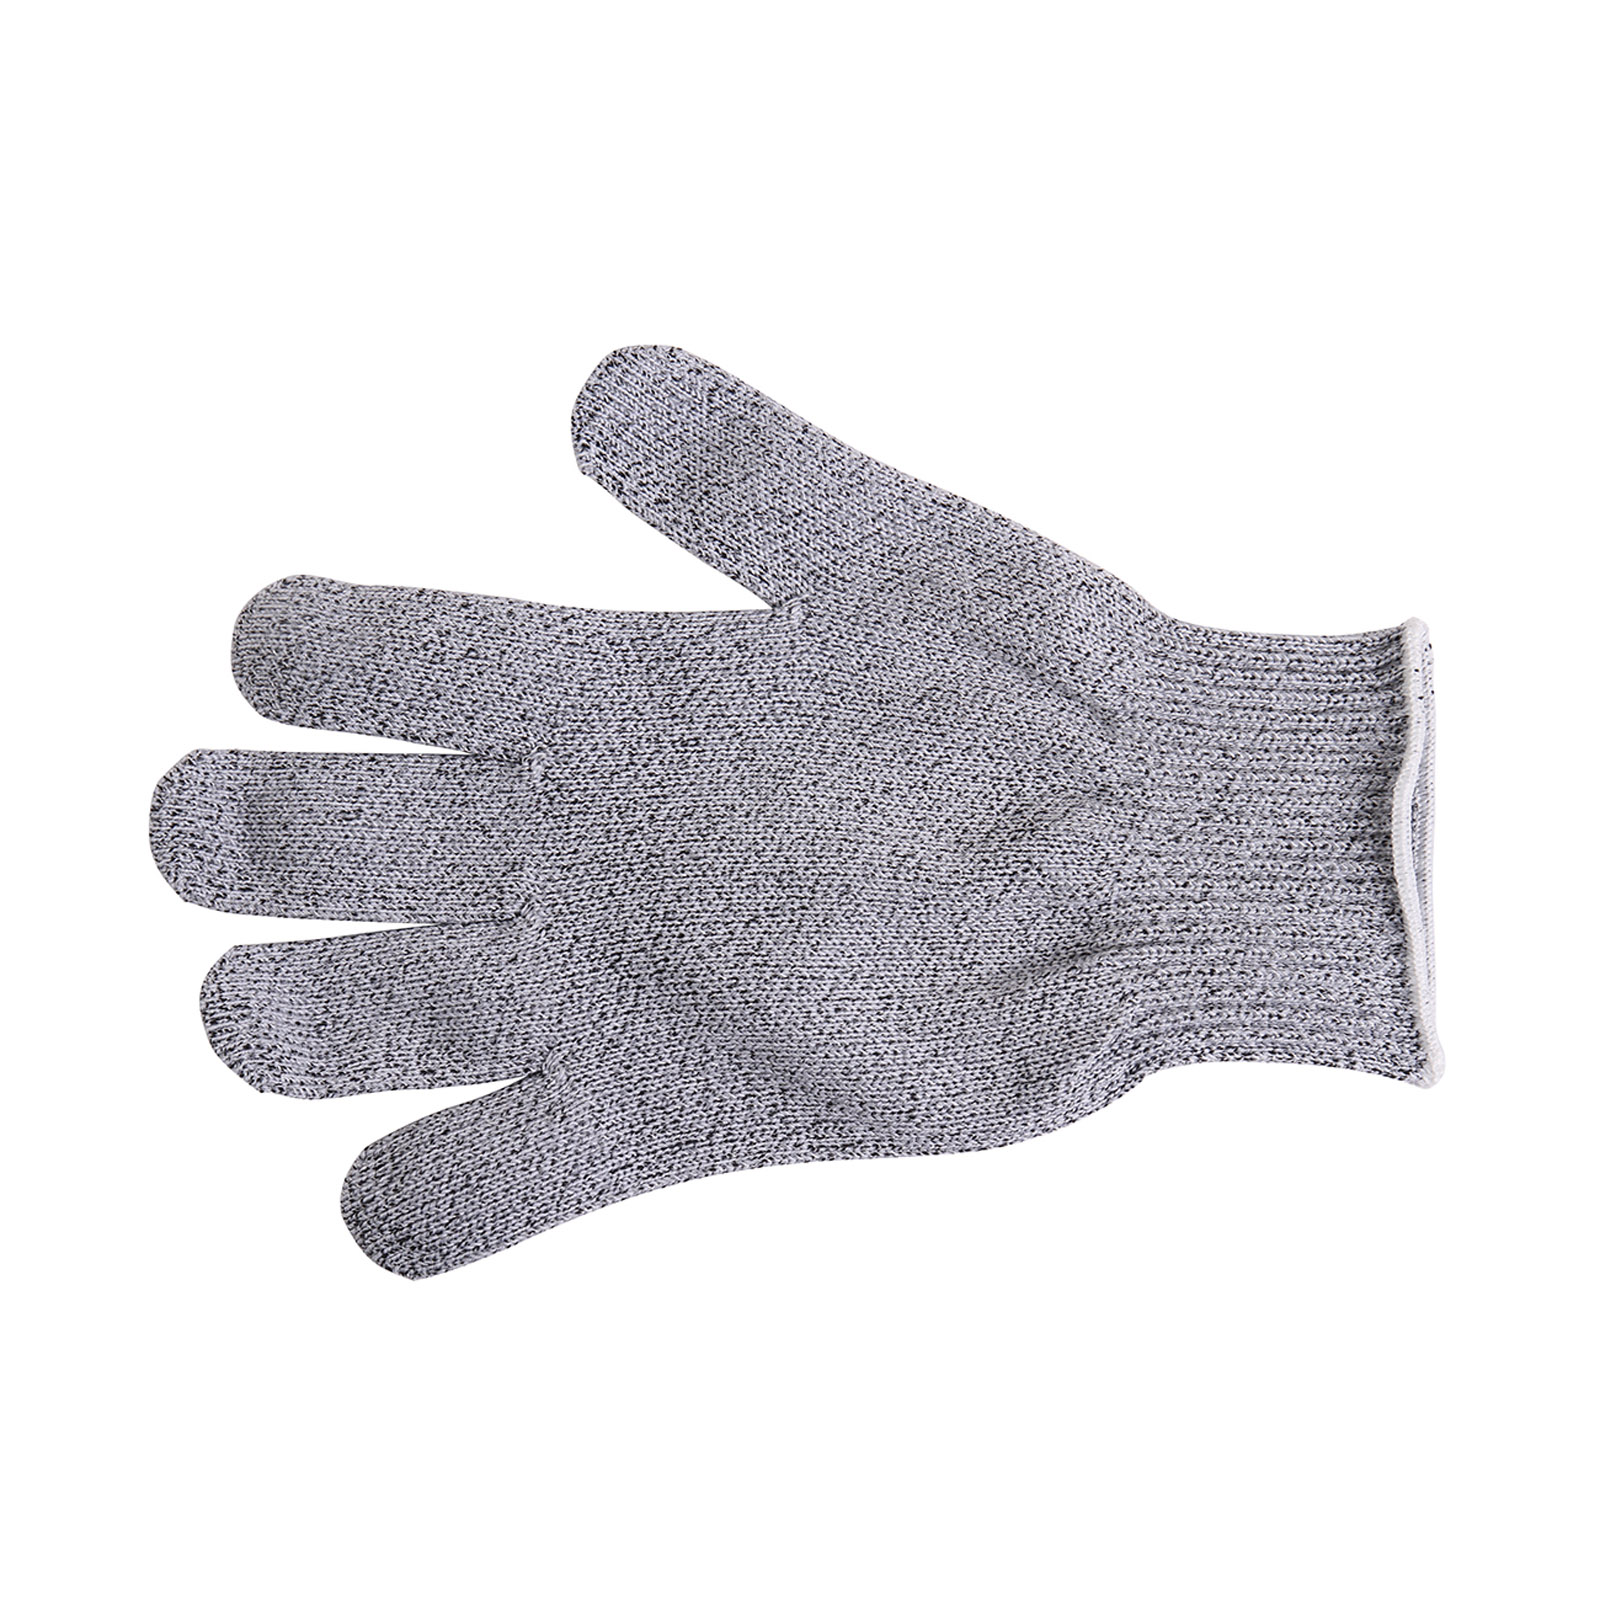 Mercer Culinary M33412L glove, cut resistant